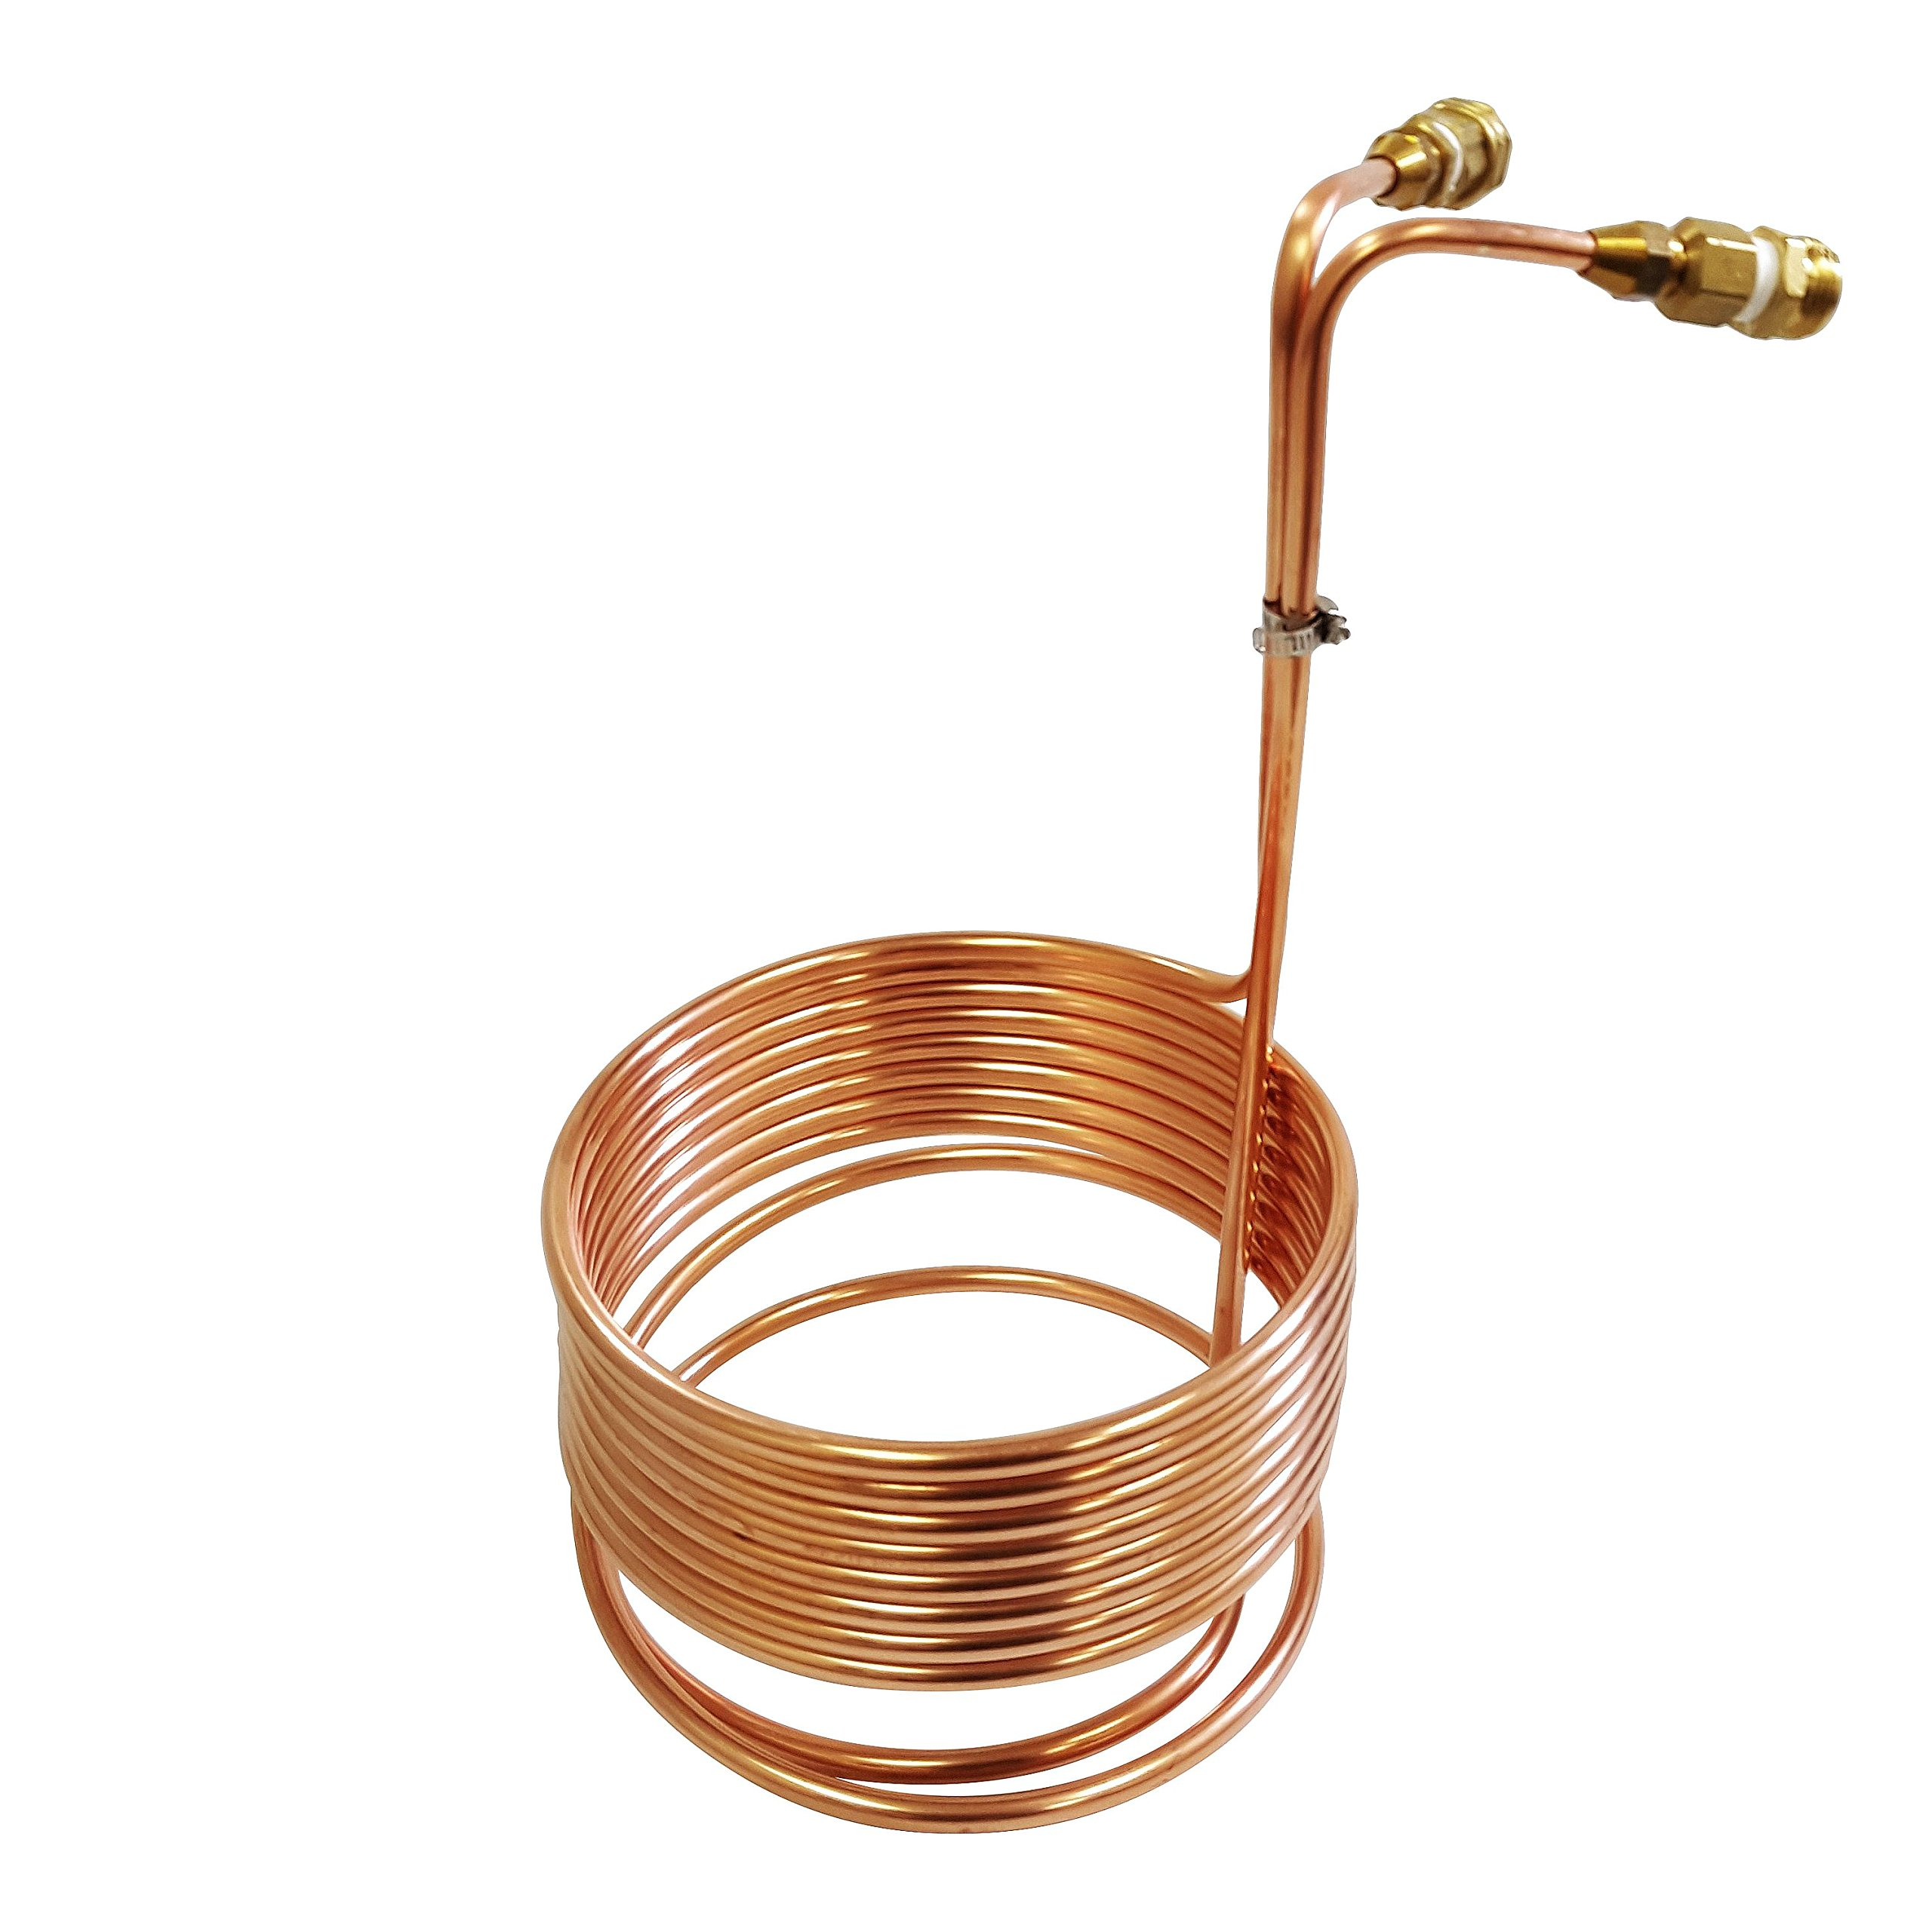 Copper Coil Immersion Chiller 25 Feet Length with Drain Line